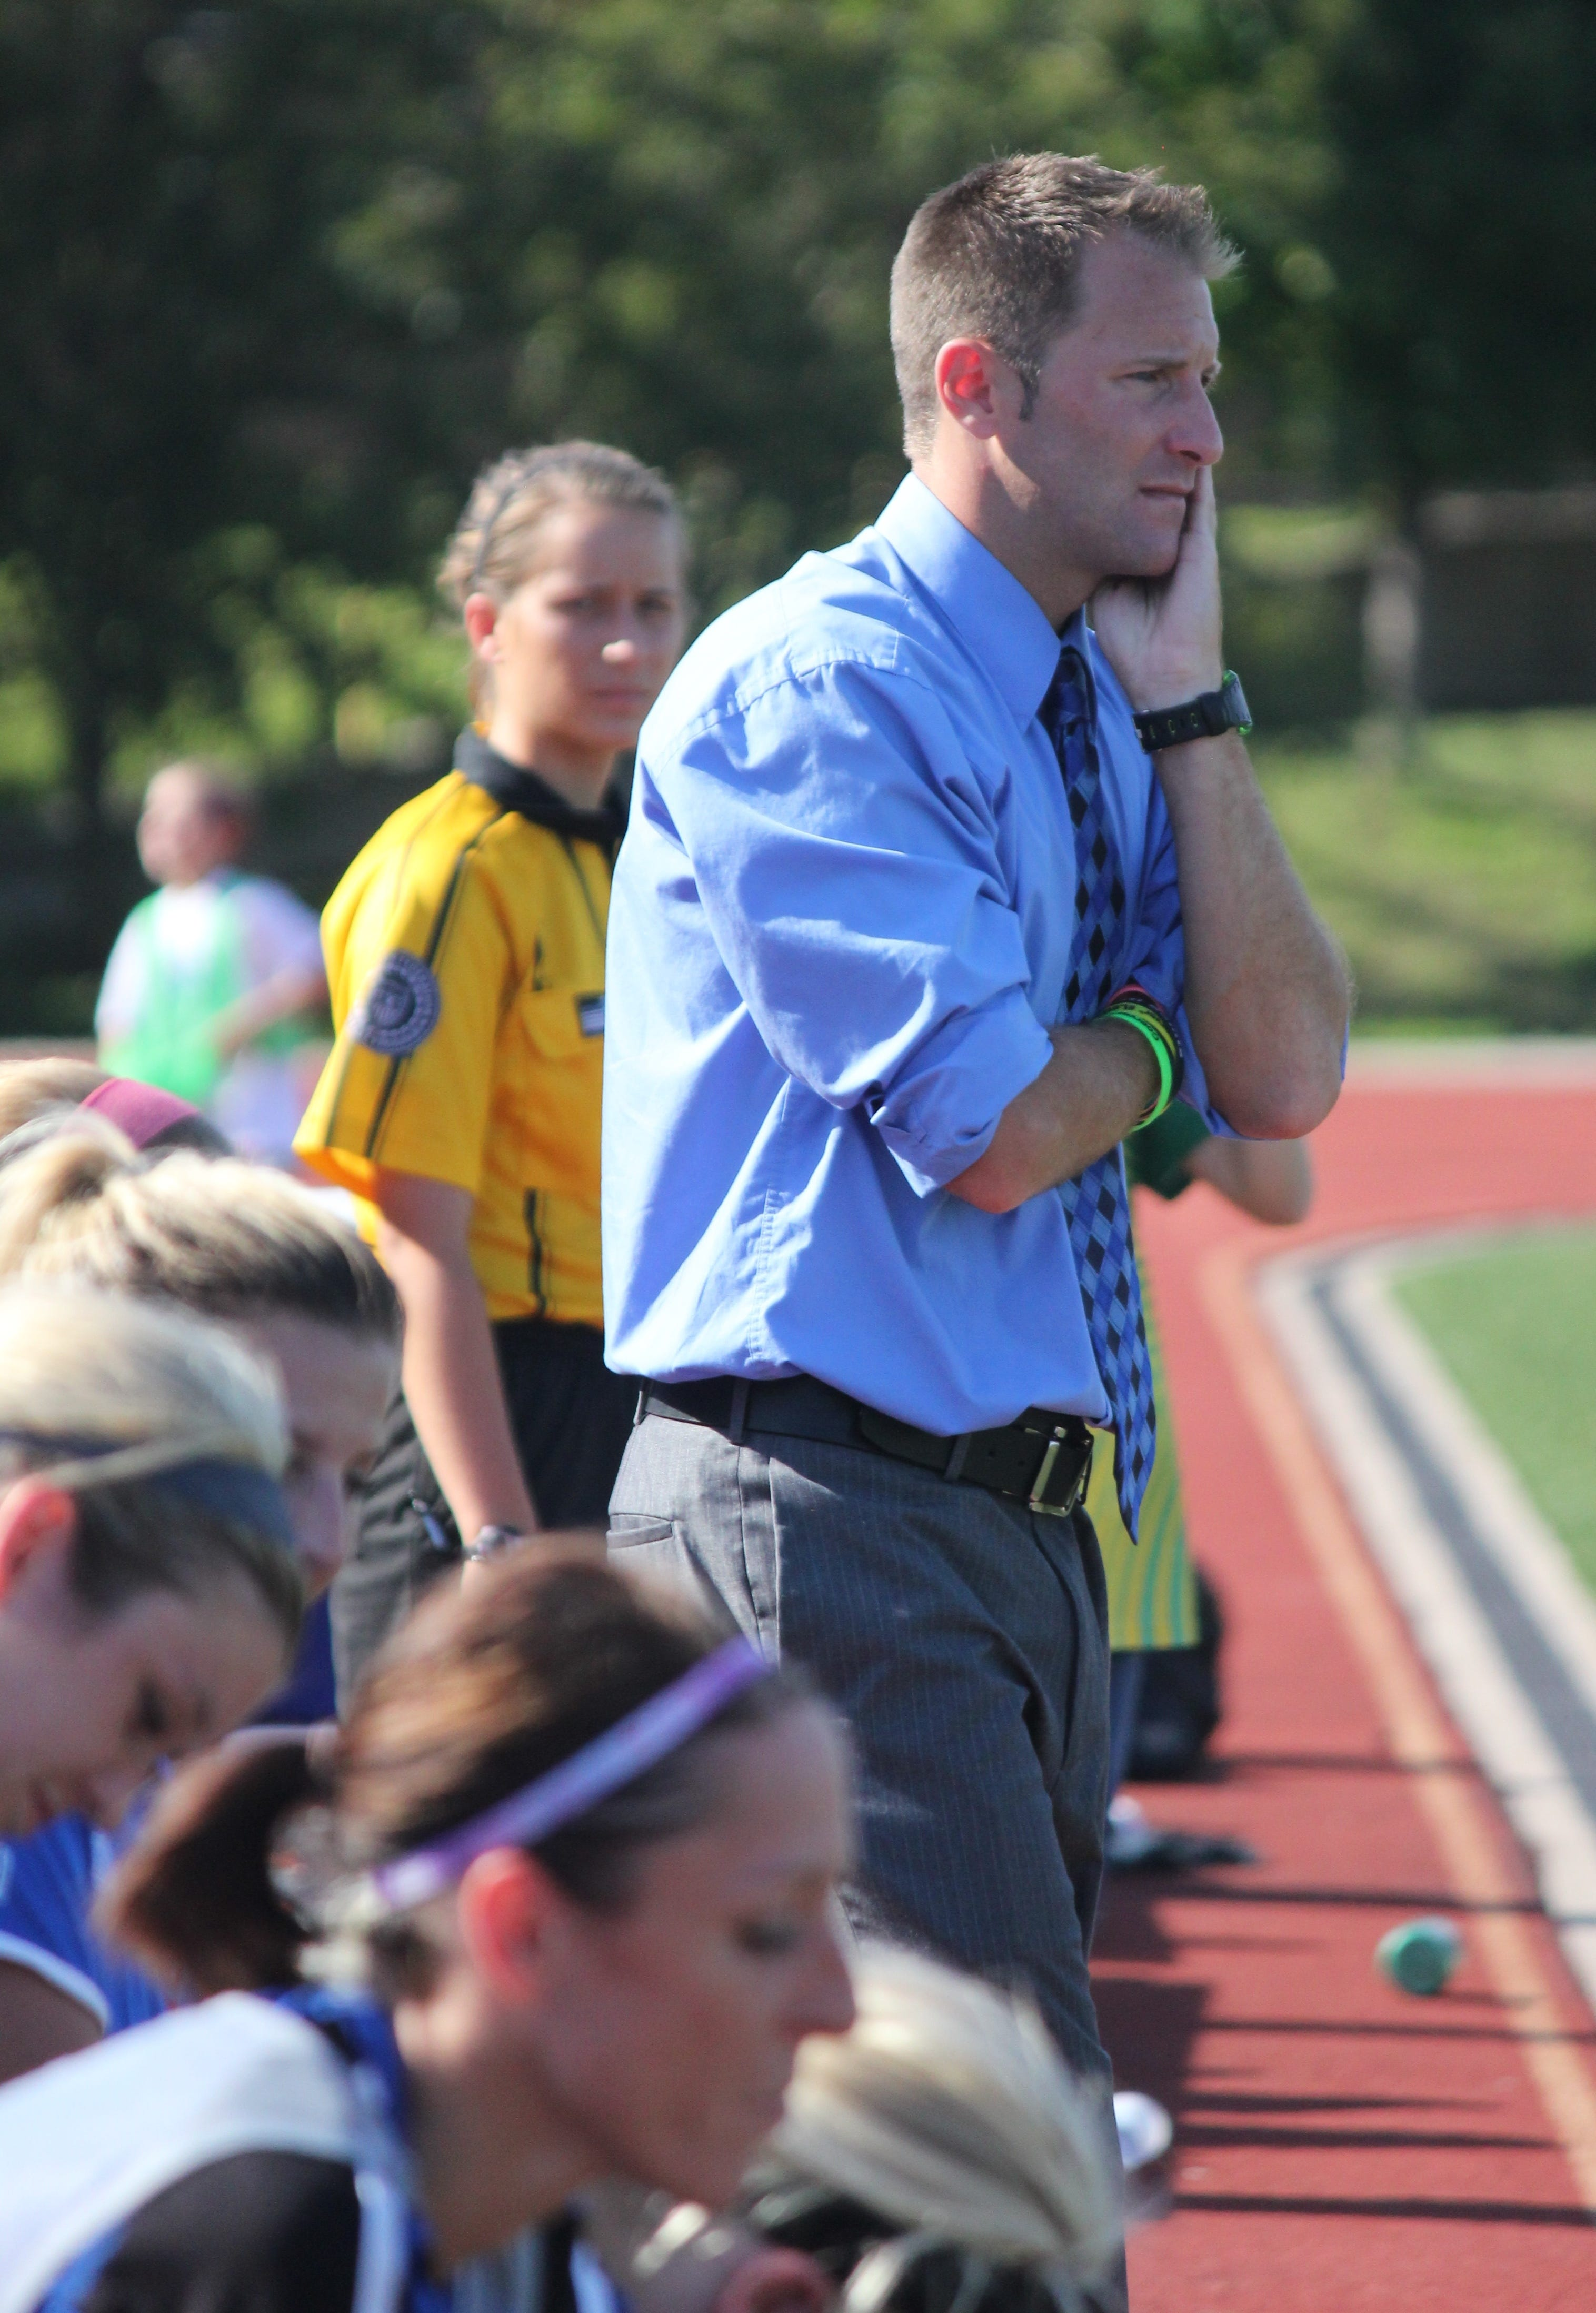 Head coach Joe Talley - also head coach for Finneytown boys soccer team - watches his Lady Saints in the second half of the July 5 game against FC Pride. The team won 4-0 at home, Stargel Stadium.